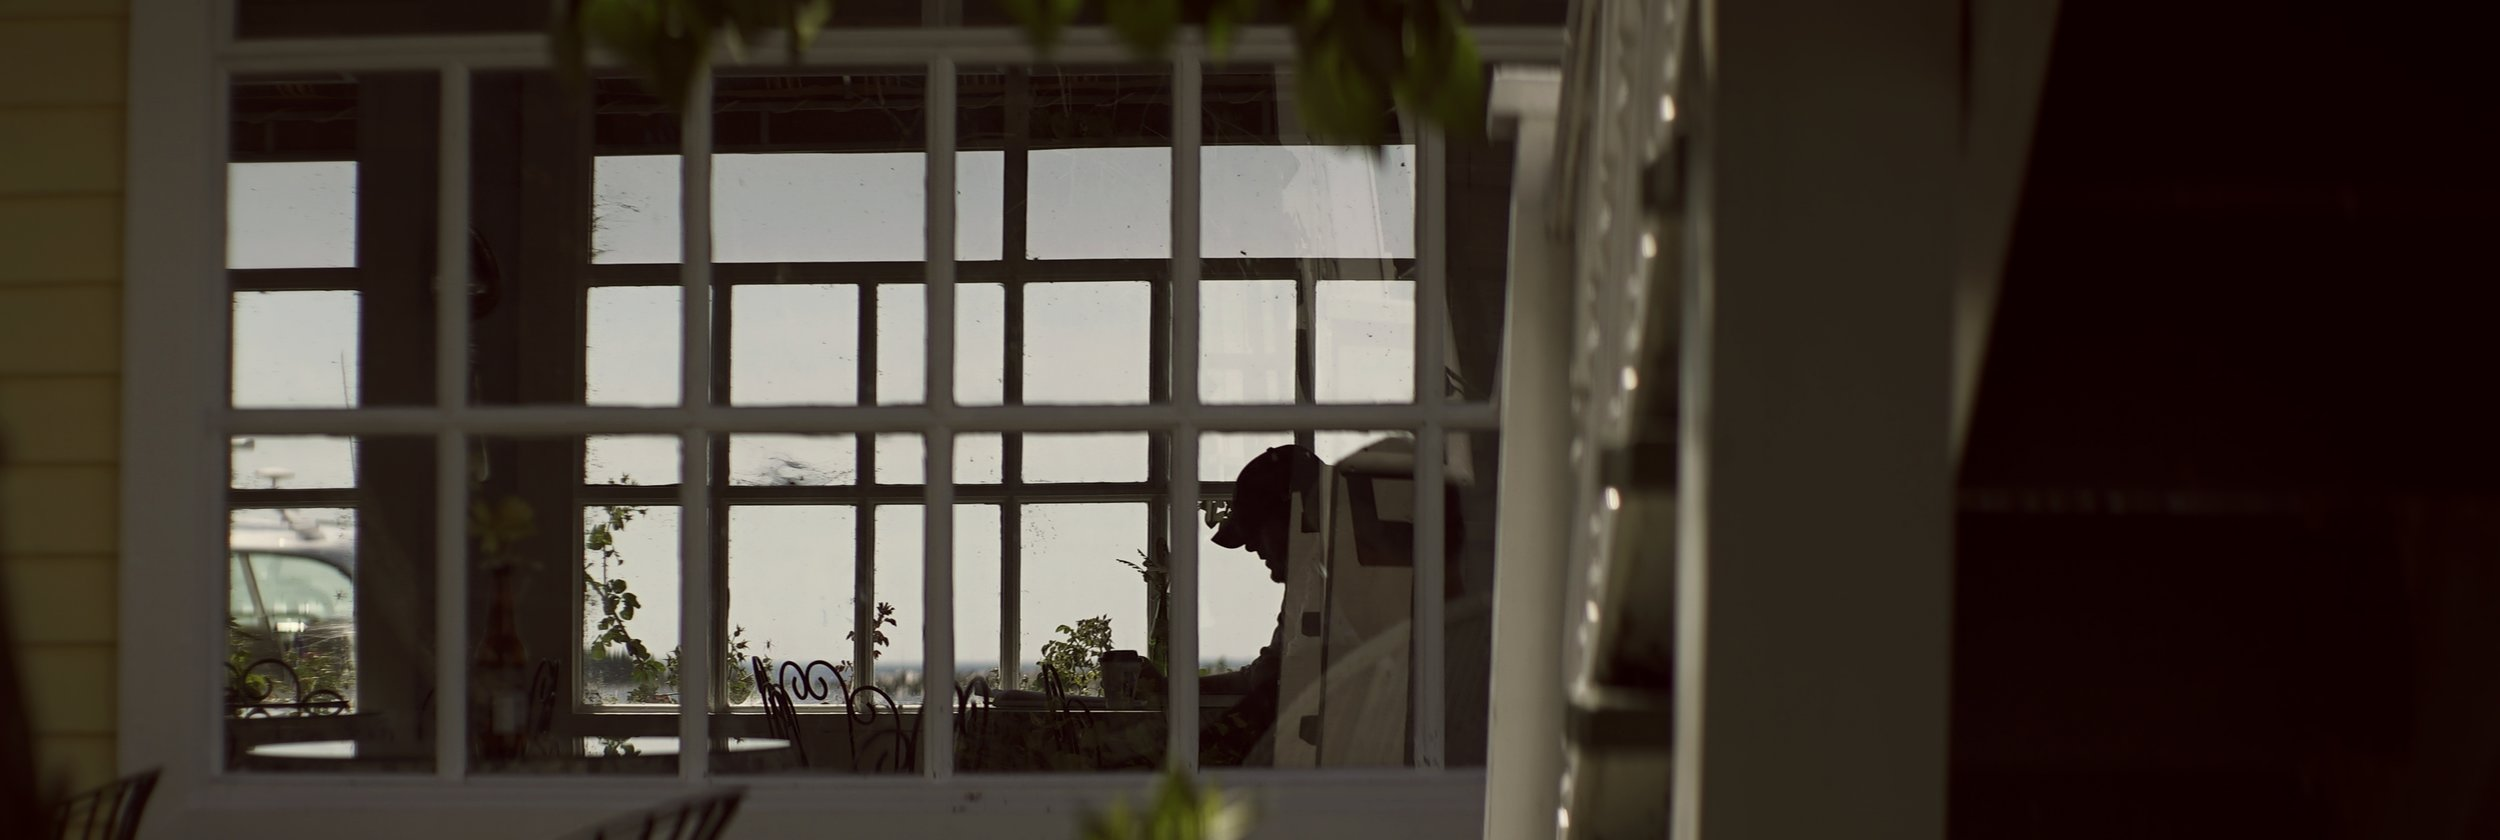 Lomo 100mm anamorphic lens | A coffee shop near the east bluff. Photo by: Keith Nickoson